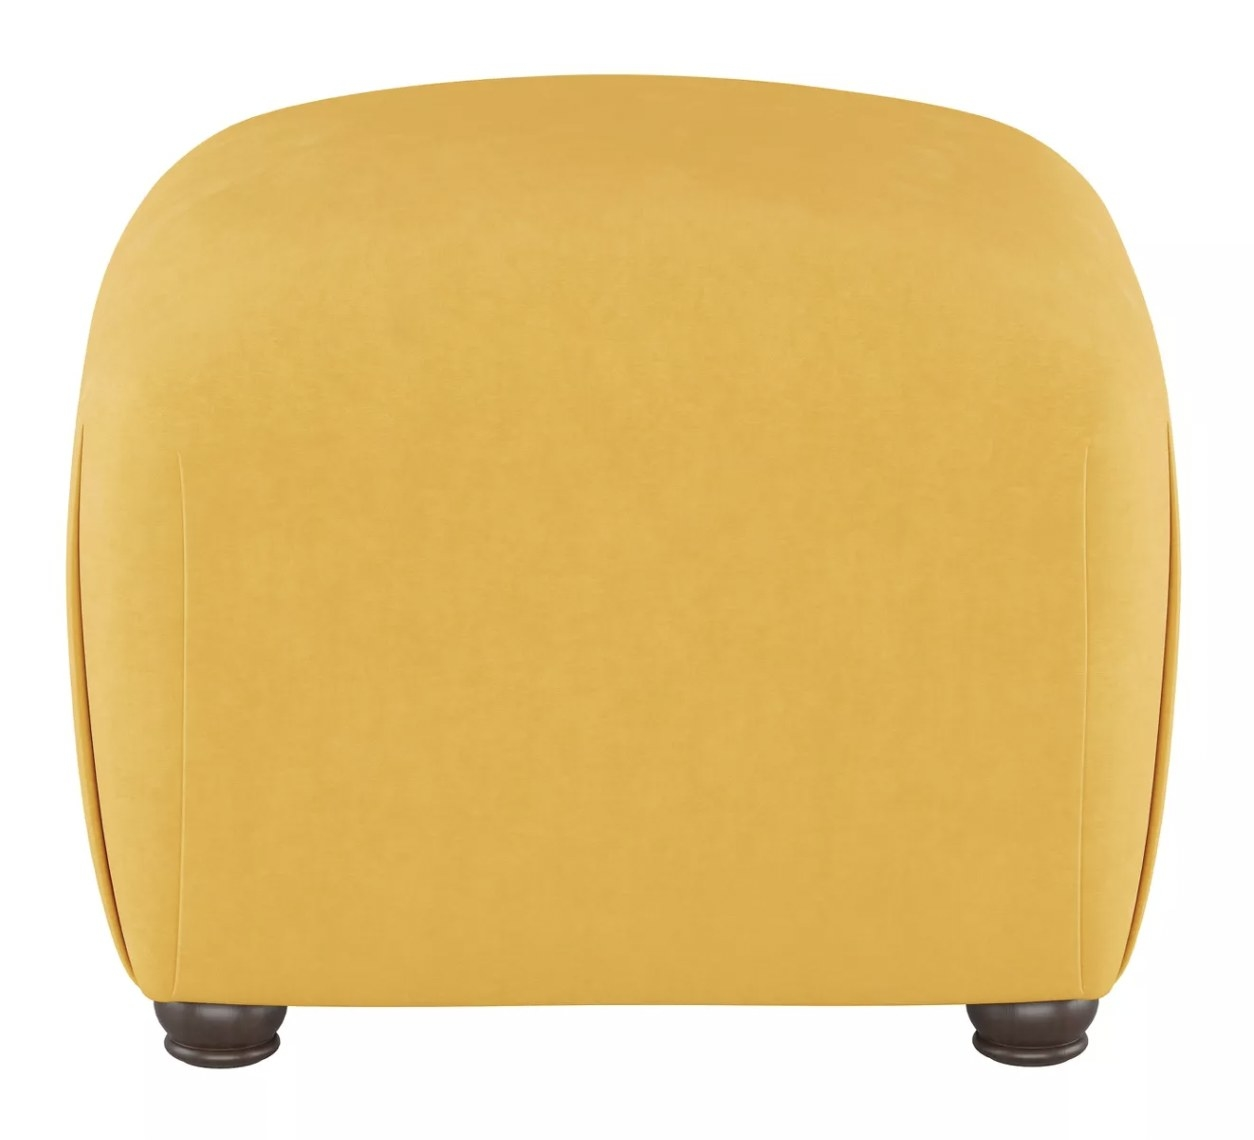 a yellow curved ottoman